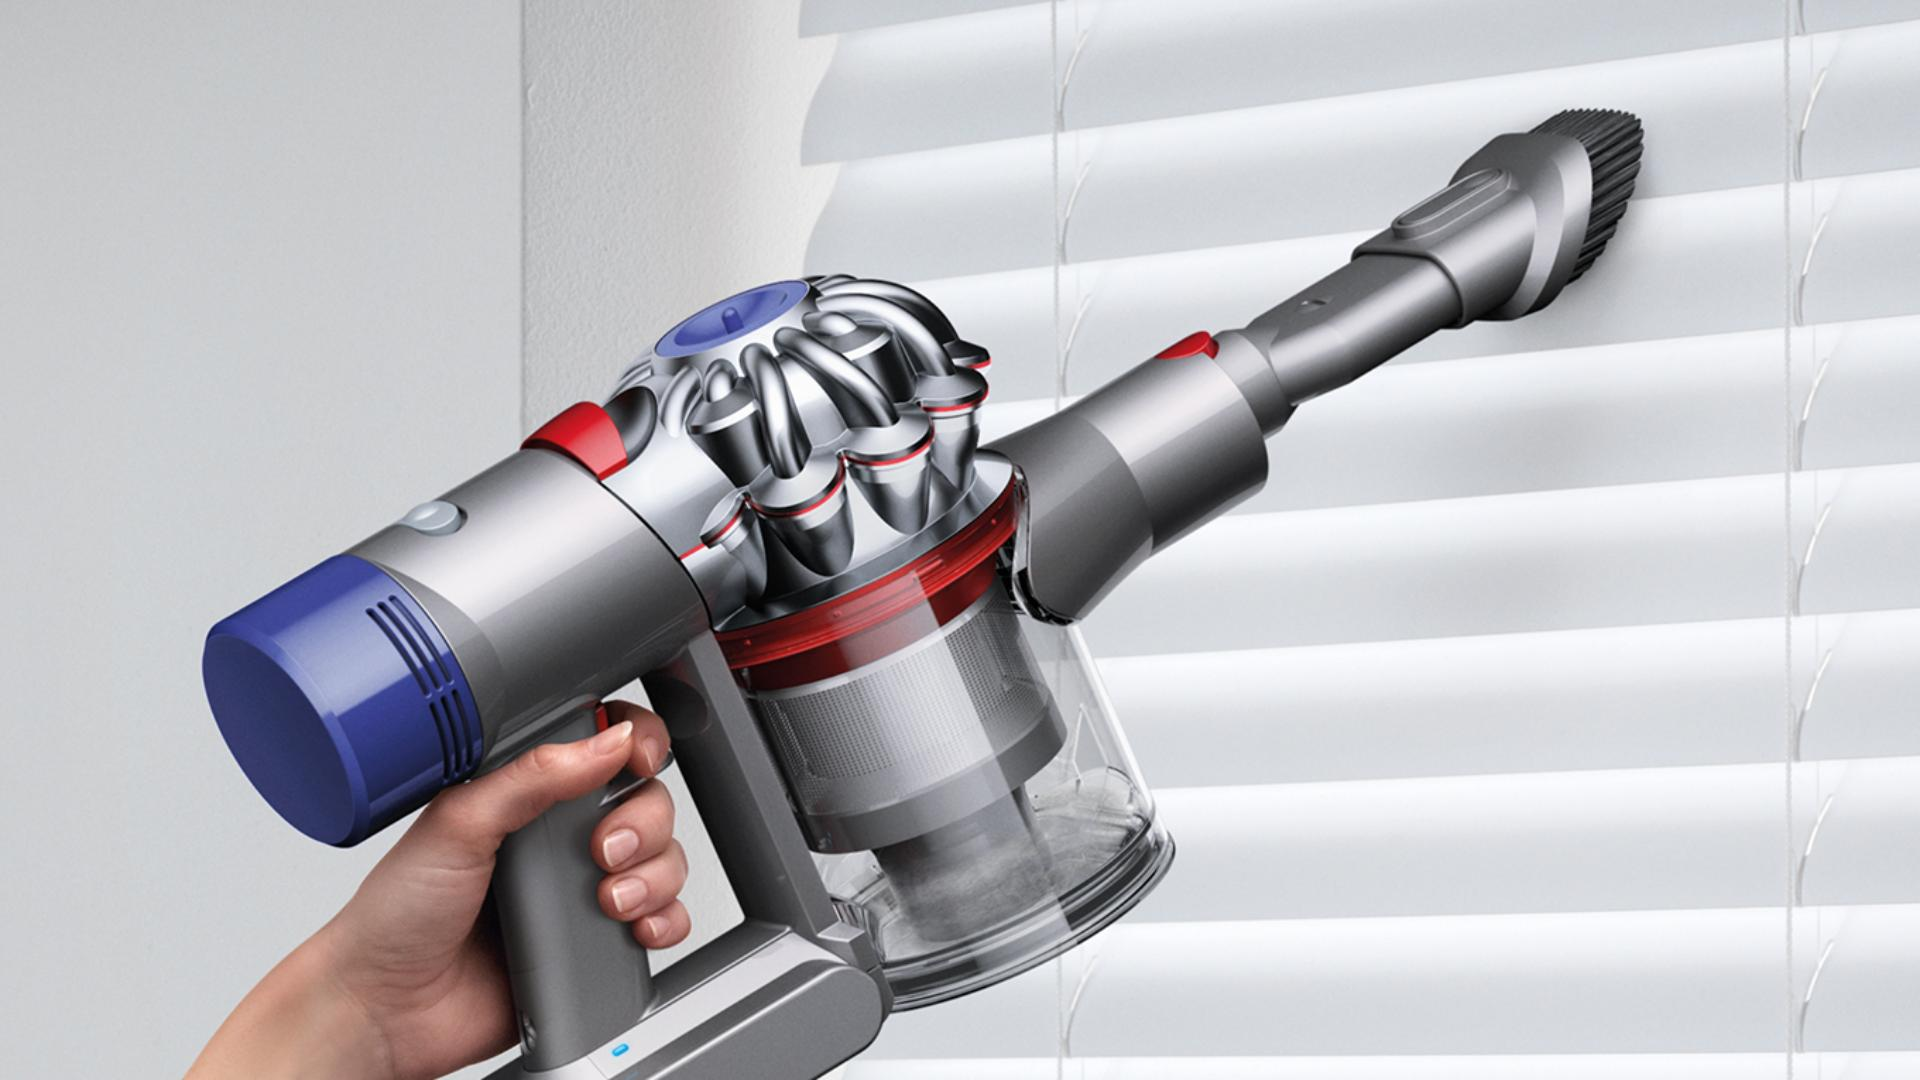 Dyson V7 handheld vacuum cleaner being used to clean awkward area